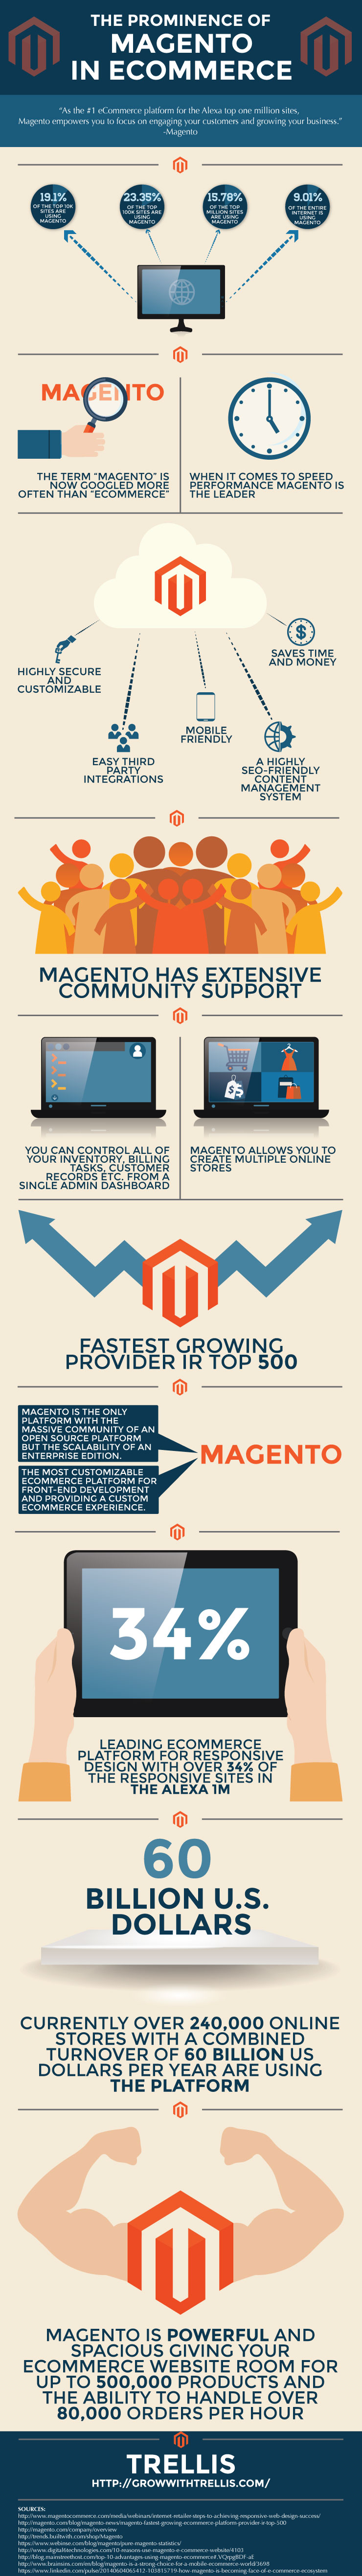 The Prominence of Magento in eCommerce